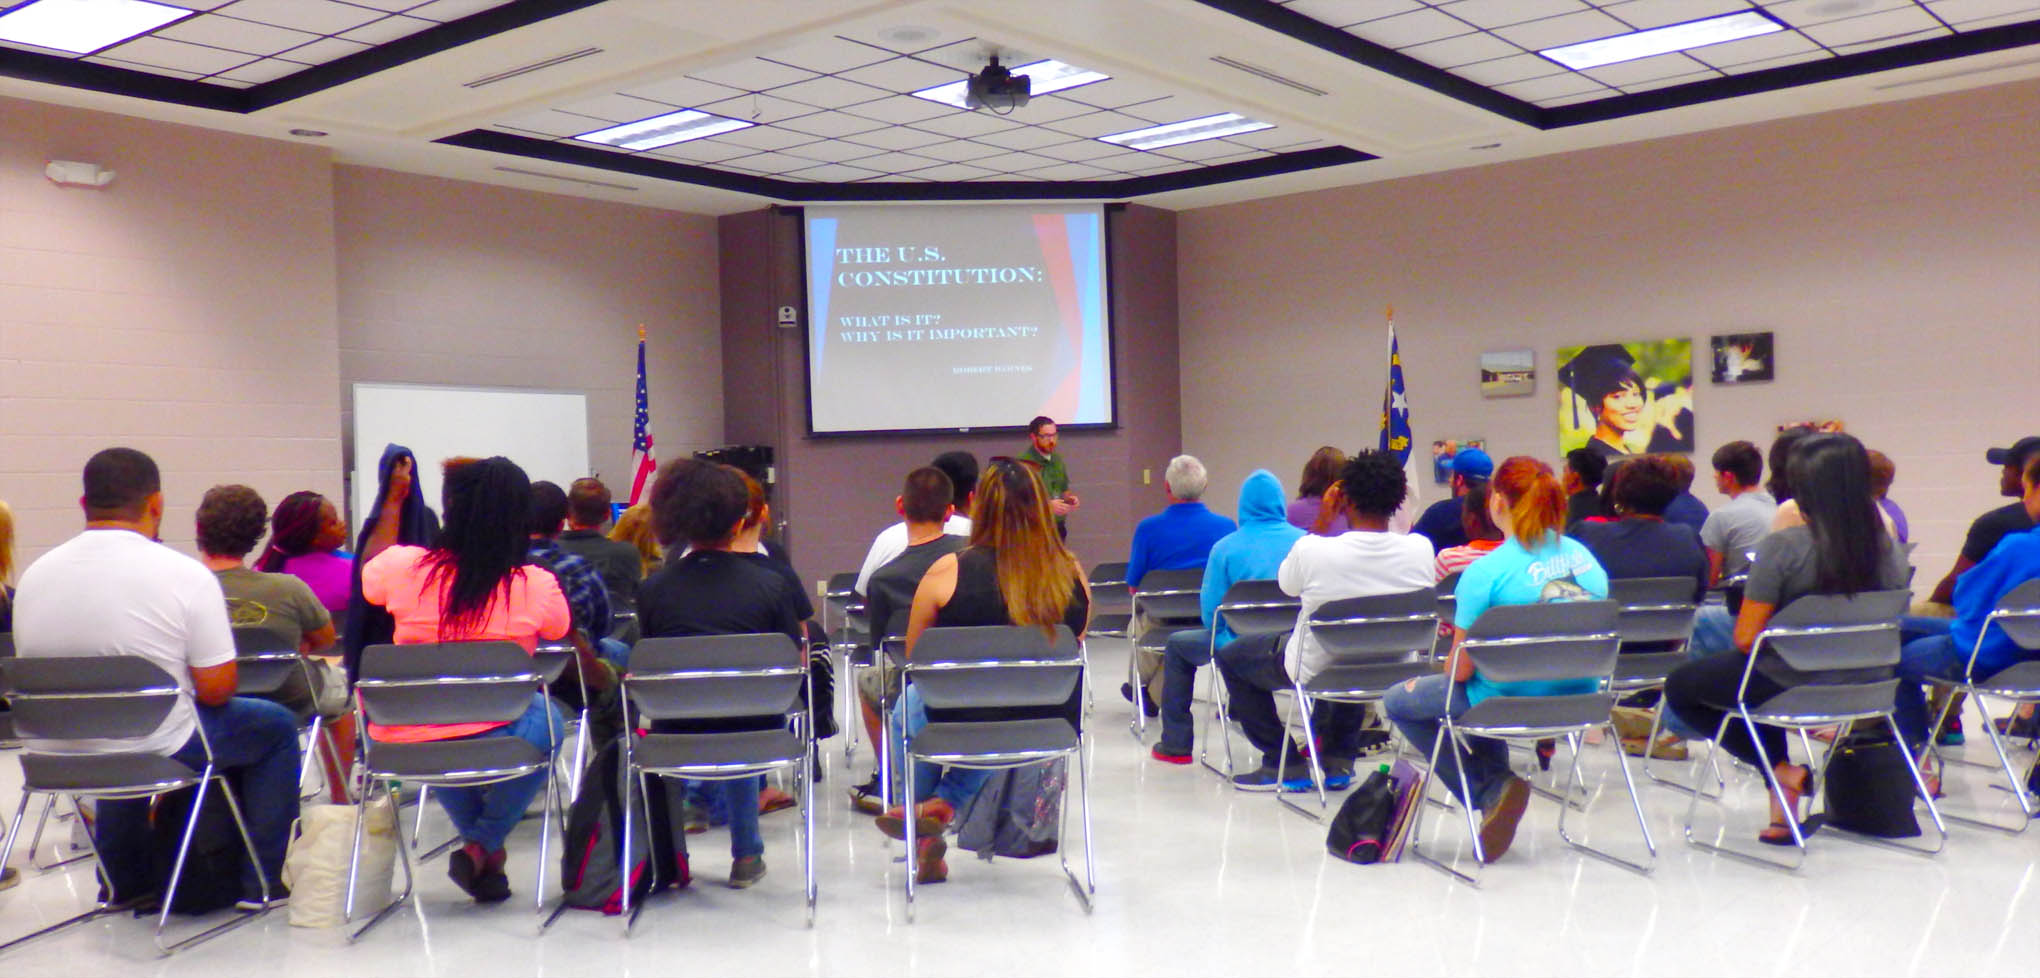 Click to enlarge,  The CCCC Harnett Main Campus recently hosted the lecture 'The U.S. Constitution: What Is It? Why Is It Important?' to commemorate Constitution Day.